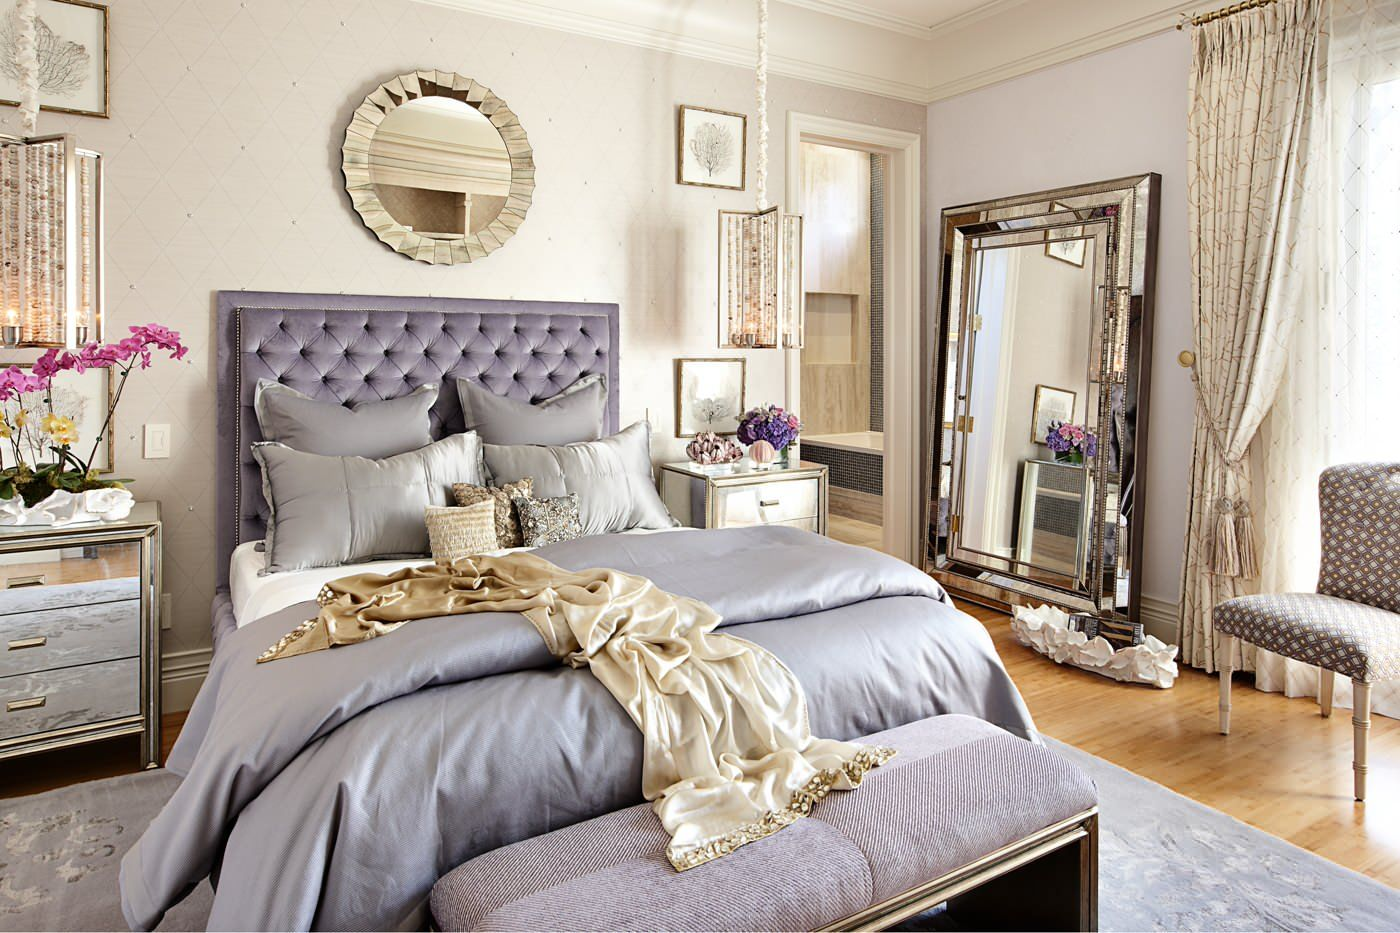 Interior Adult Bedroom Ideas 3 steps to a girly adult bedroom houzz nightstands and room ideas bedroom